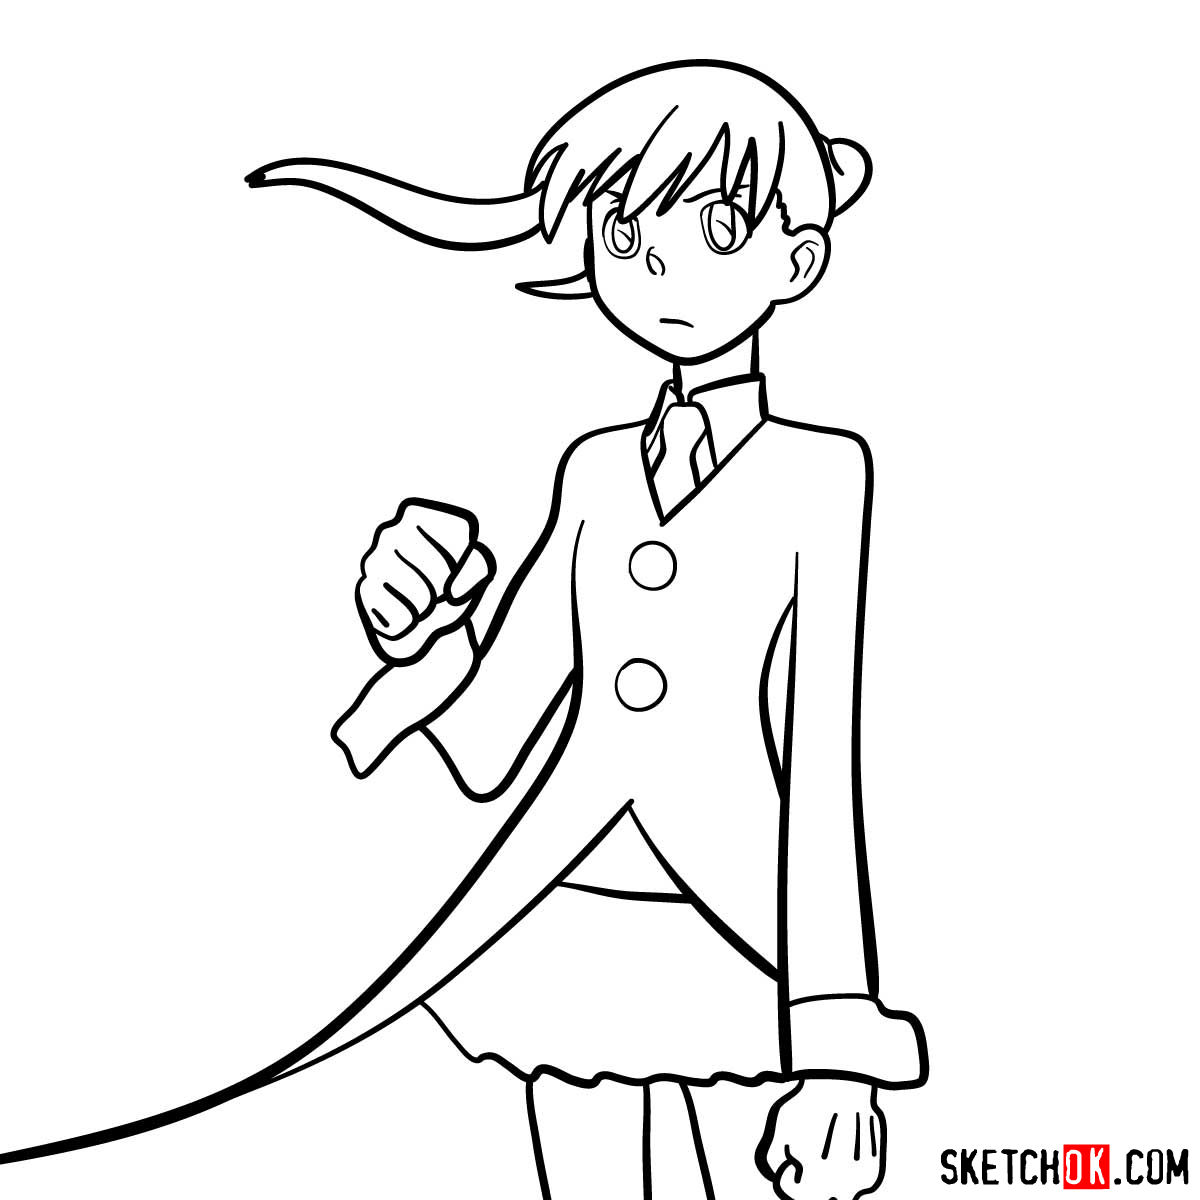 How to draw Maka Albarn | Soul Eater anime